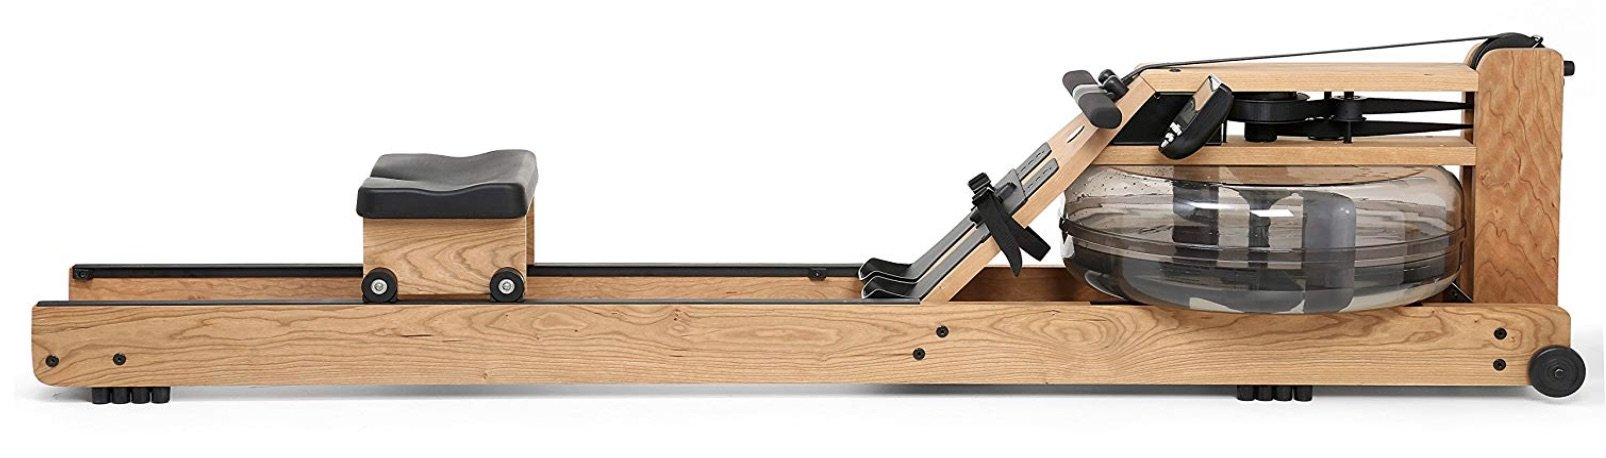 Water Rower Oxbridge Build Quality